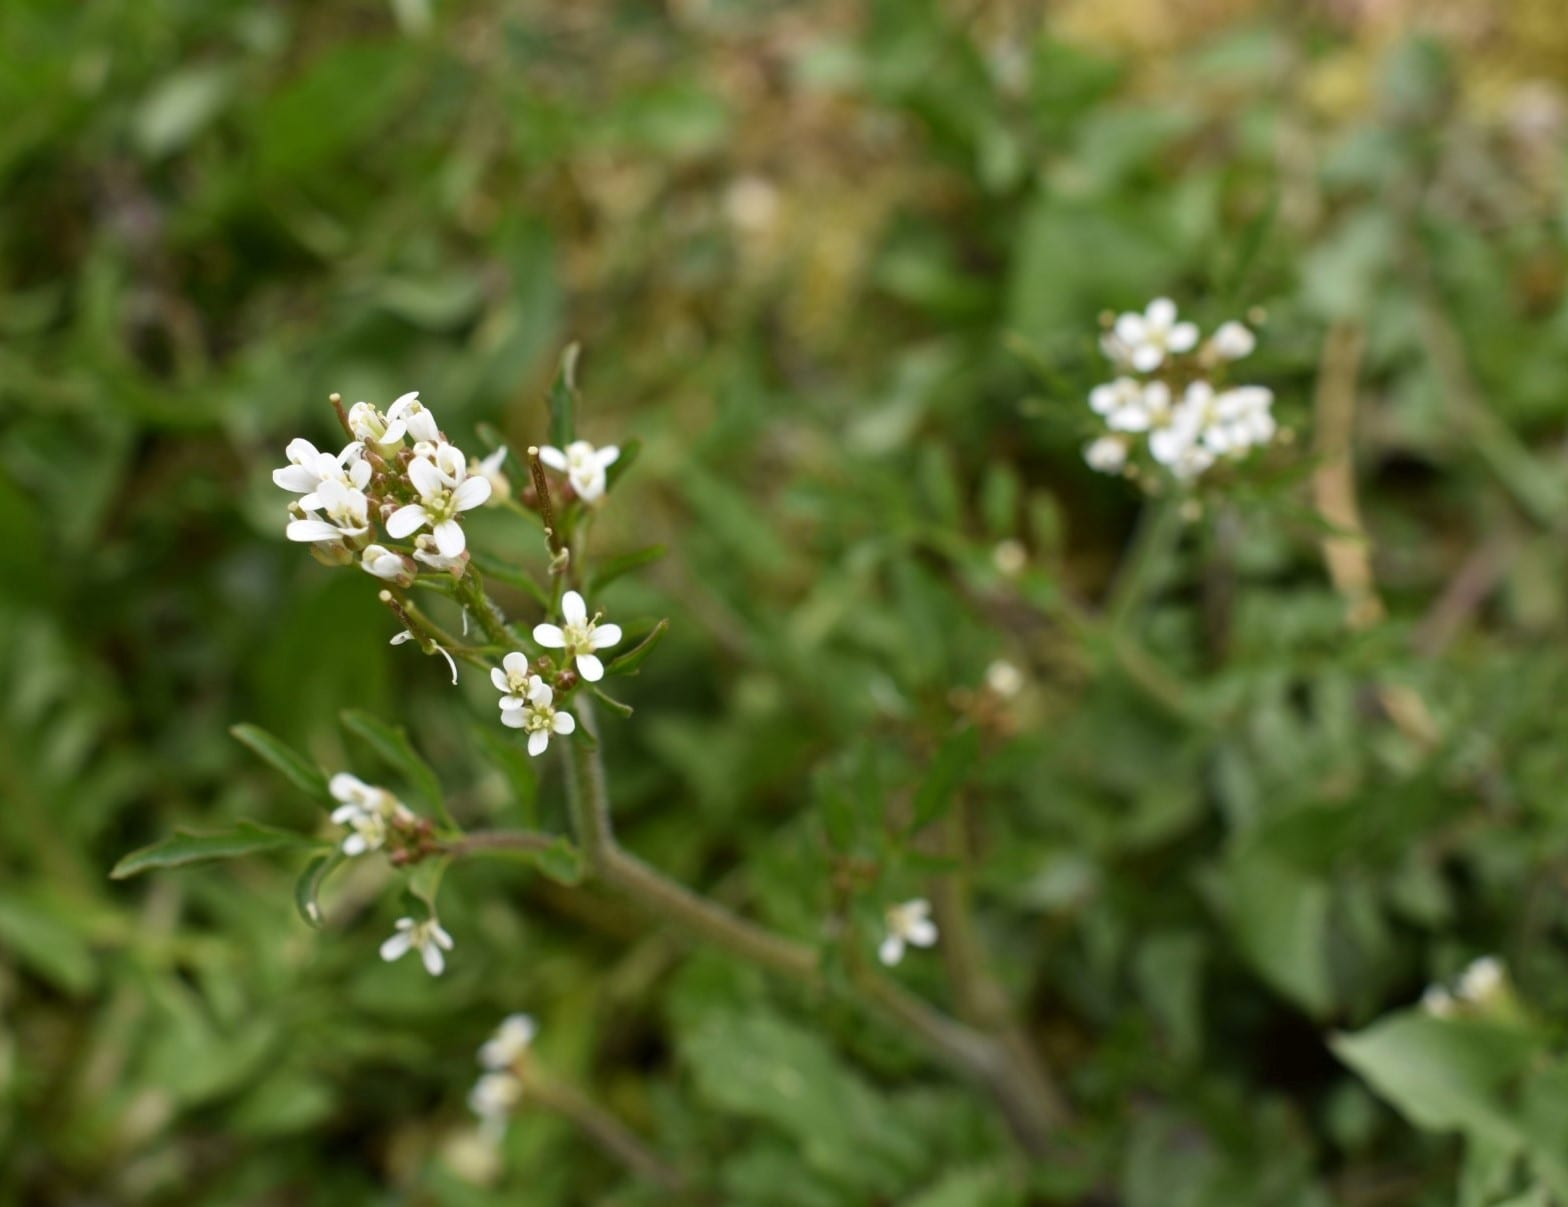 close-up-of-the-small-white-wavy-bittercress-flowers